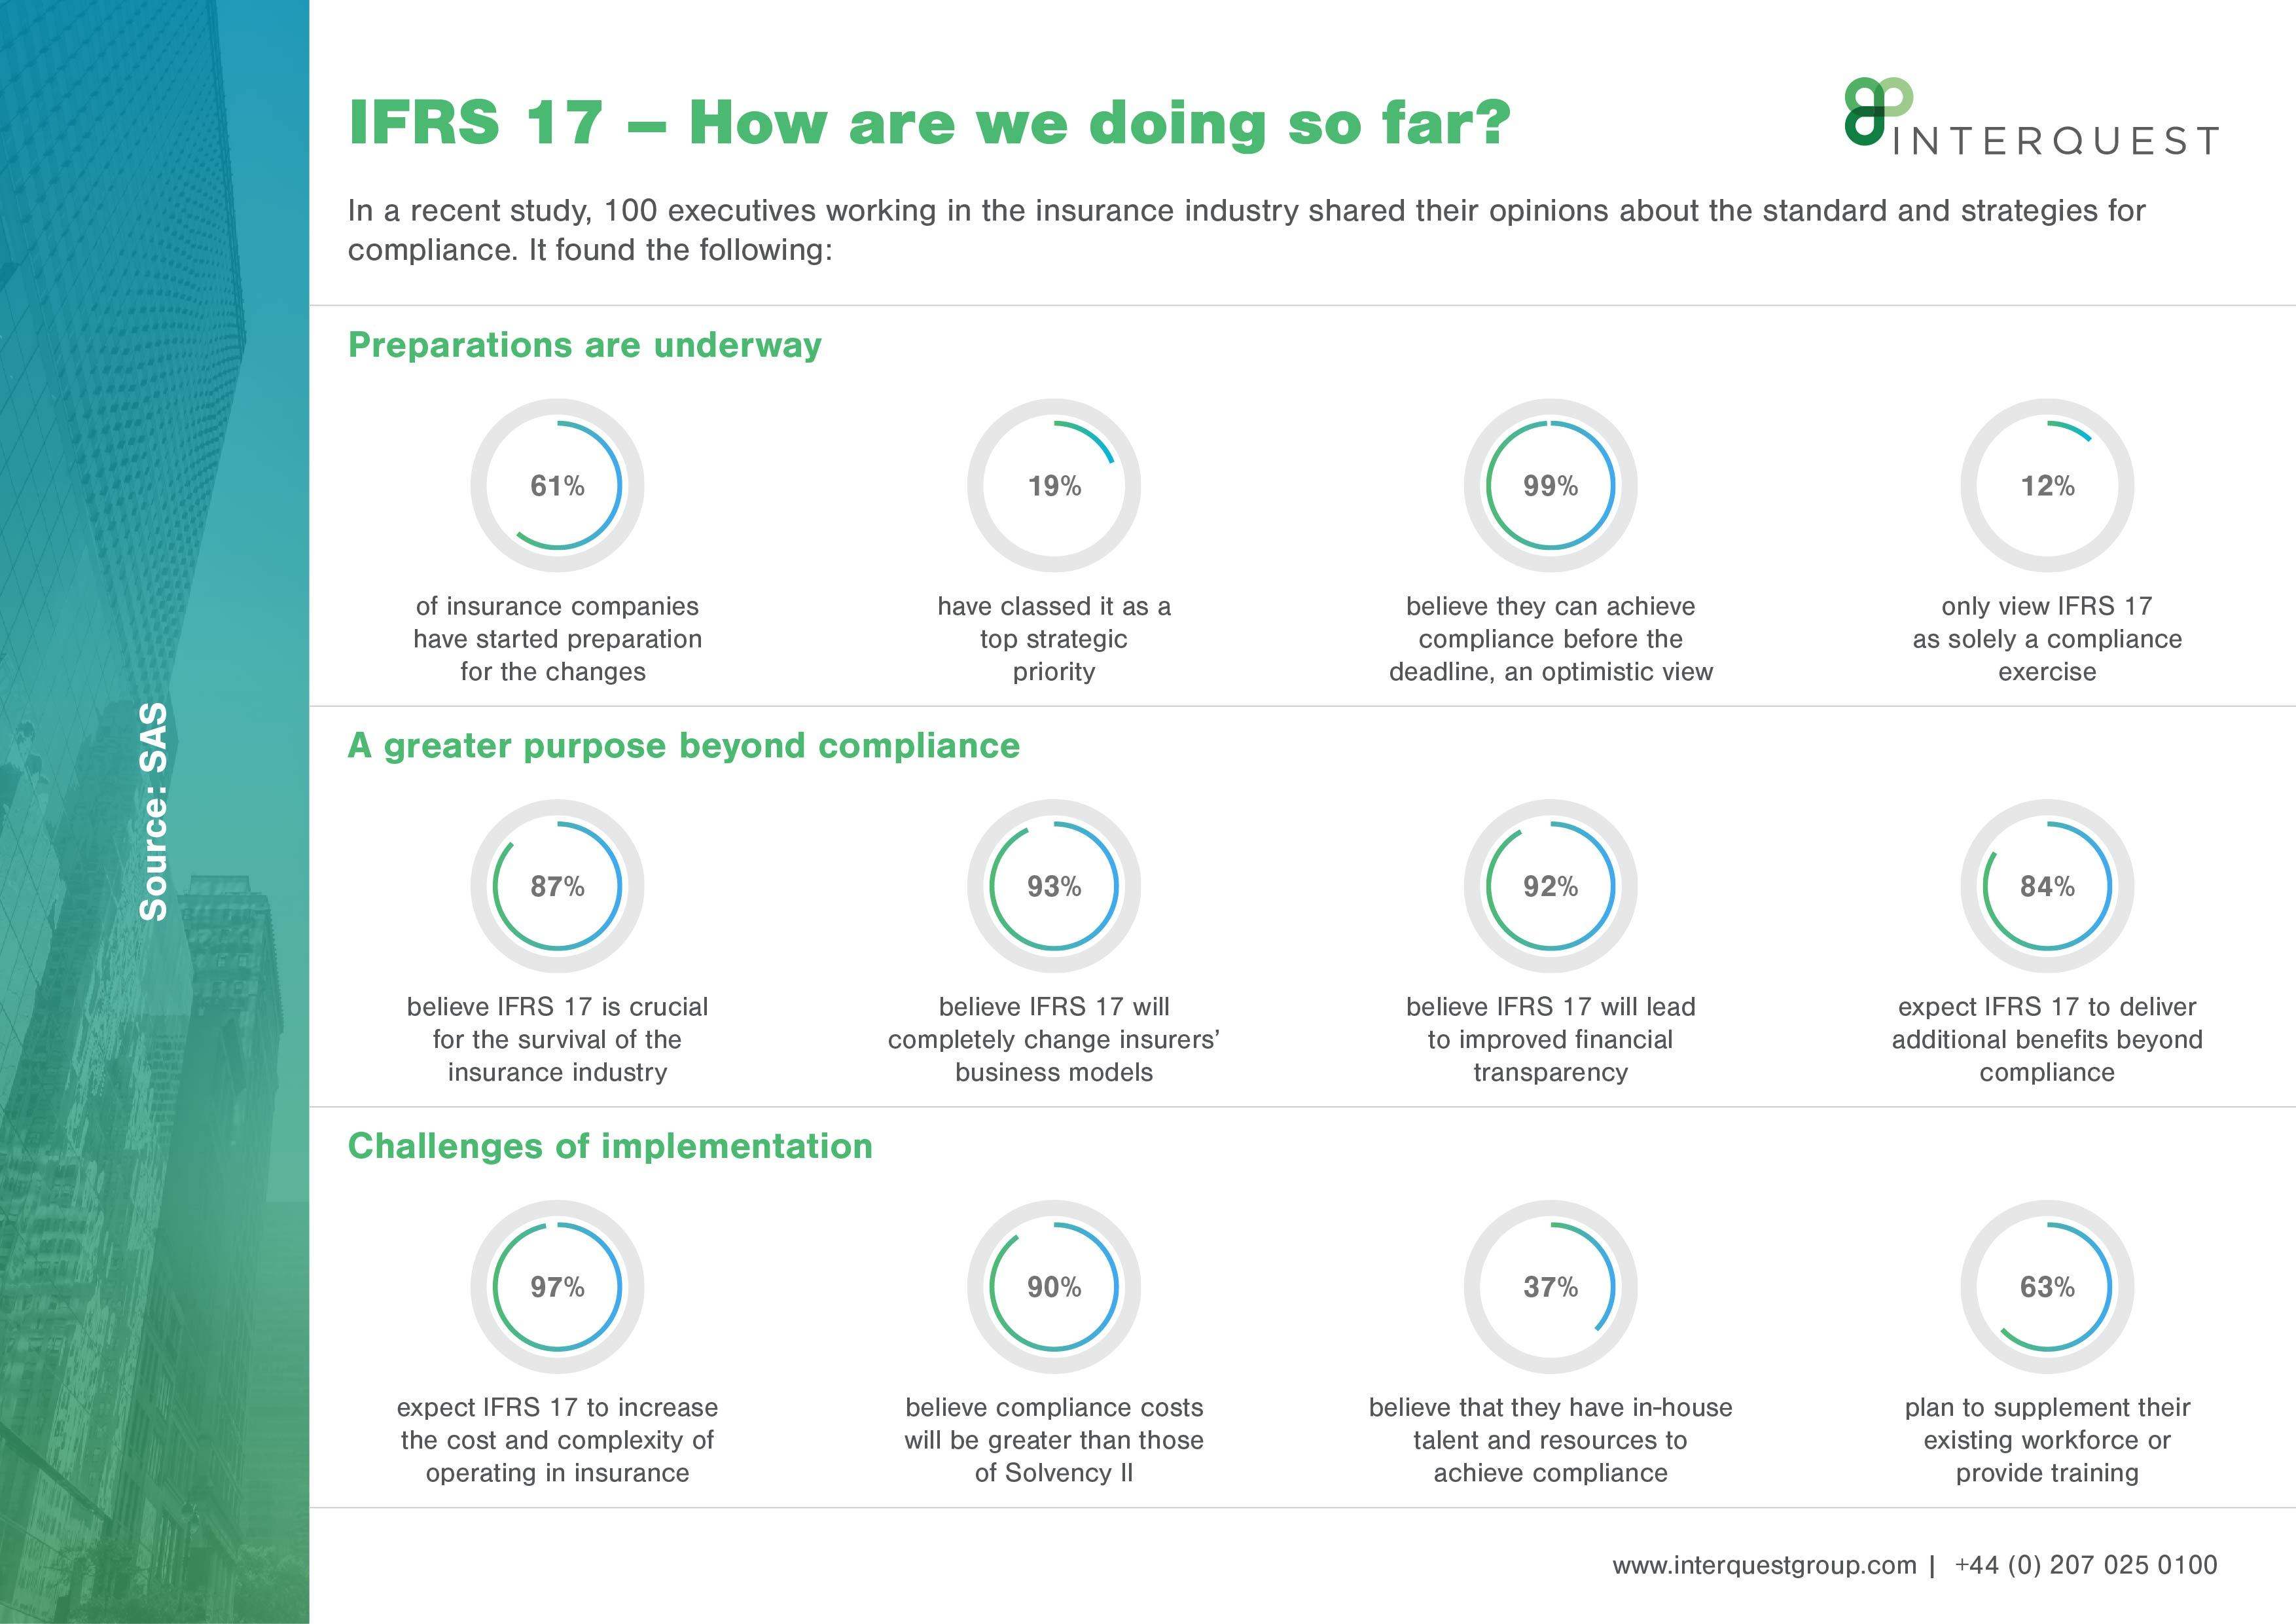 IFRS 17 - how are we doing so far?